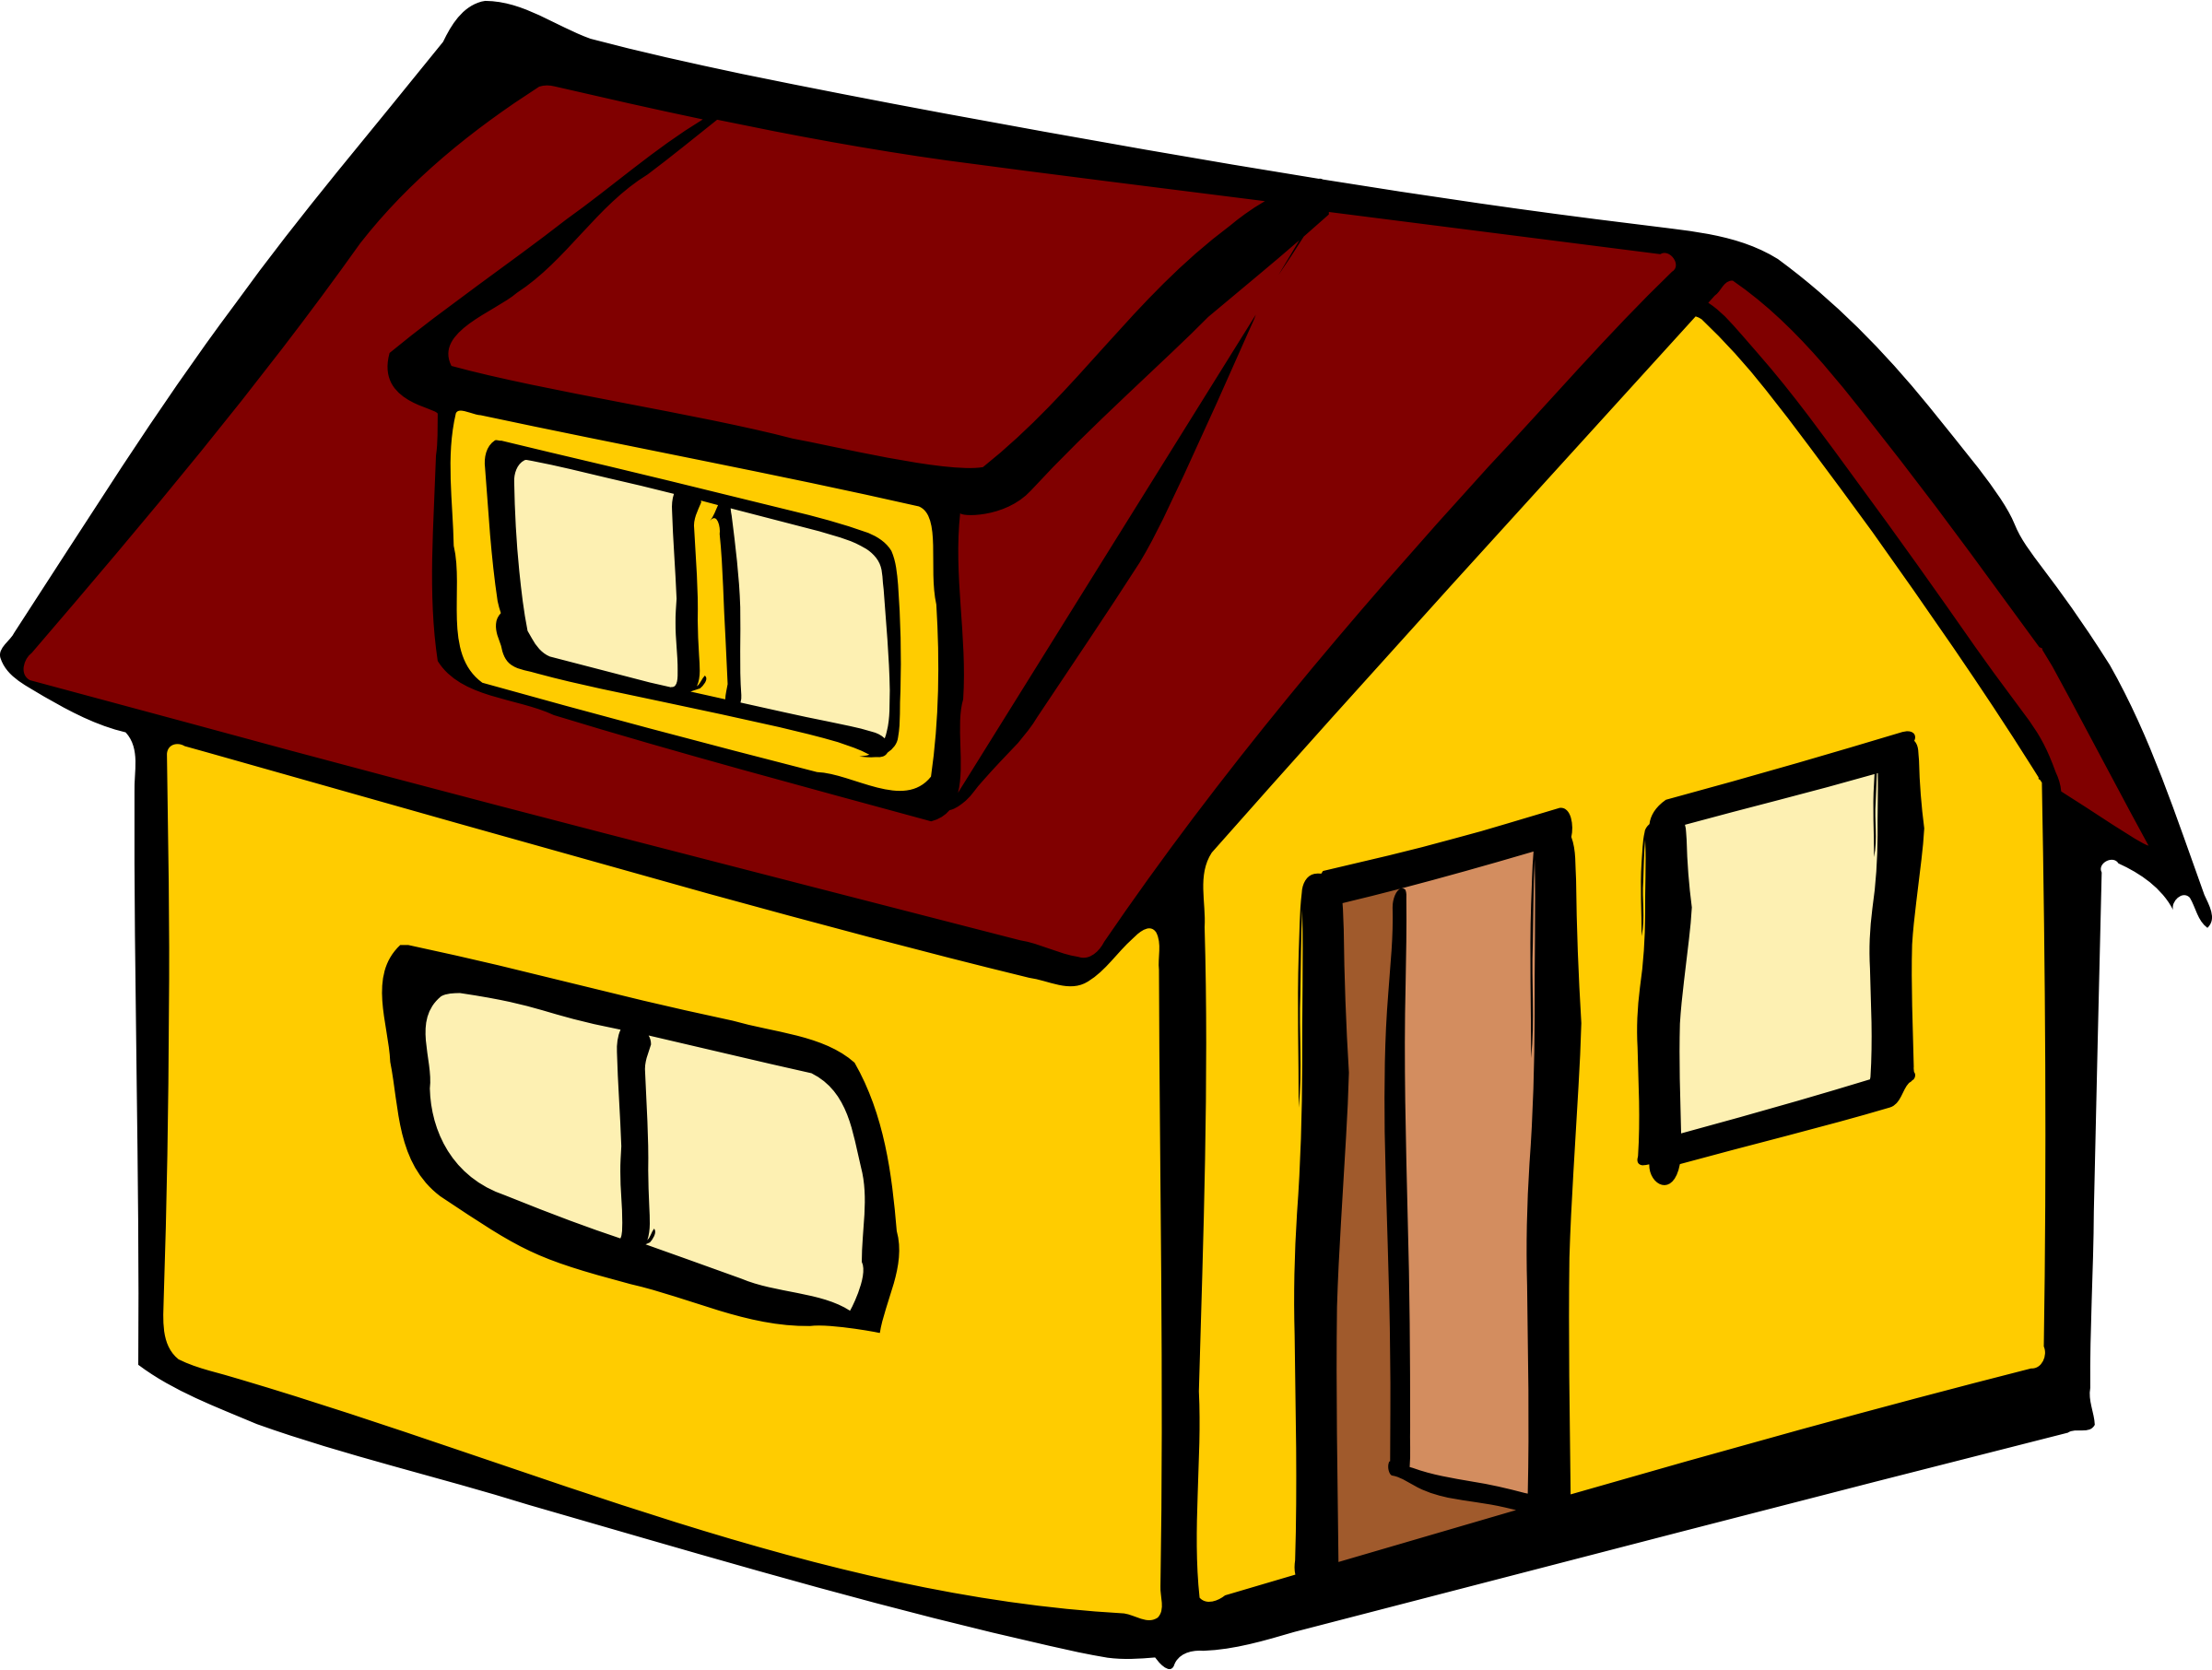 Up clipart house. Drawing at getdrawings com